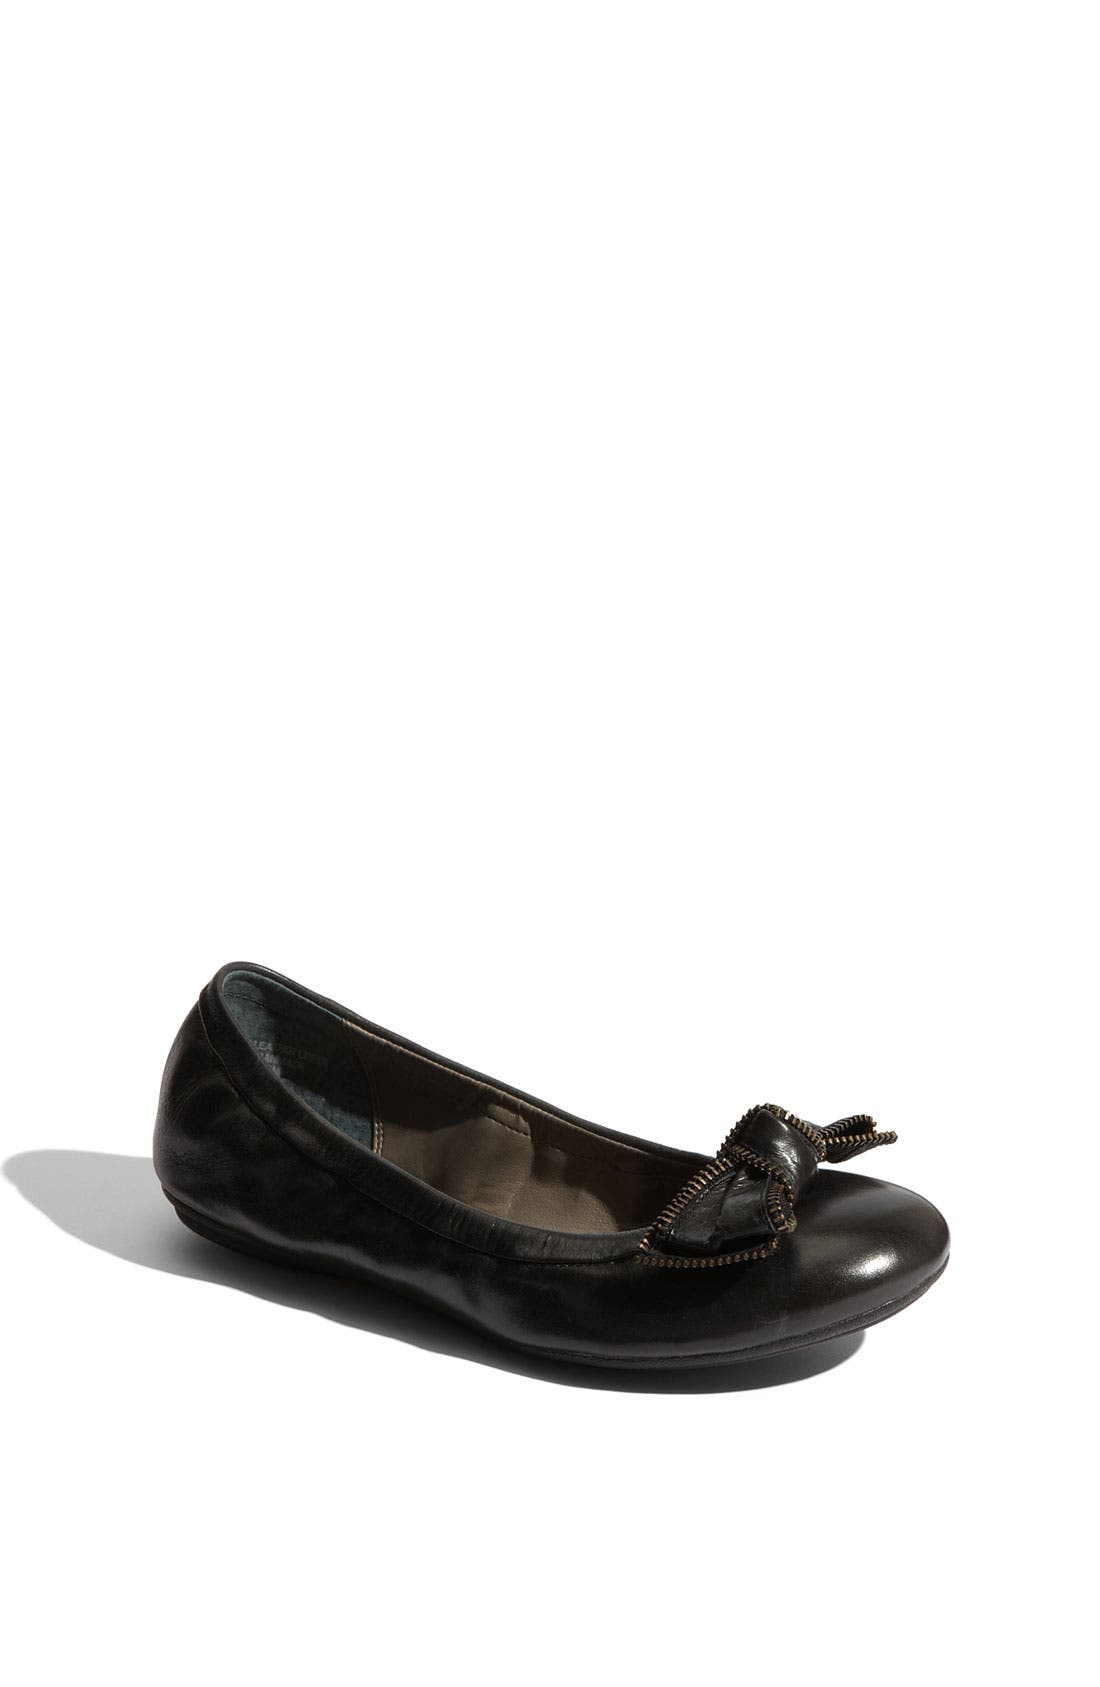 Alternate Image 1 Selected - Nordstrom 'Tessa' Flat (Walker, Toddler, Little Kid & Big Kid) (Special Purchase)